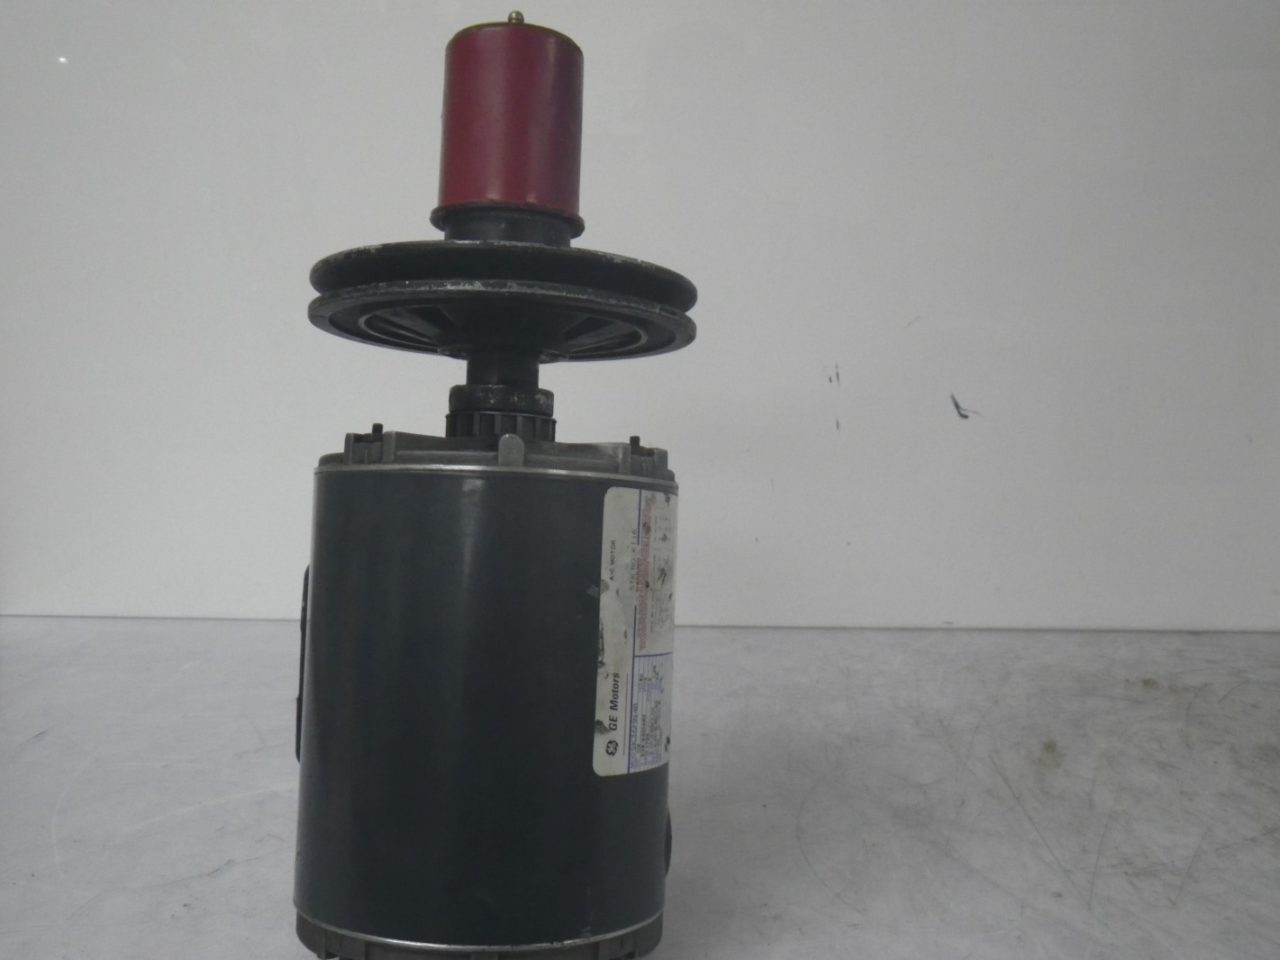 IMGP65595K36MN4B 160 58B GE Motor With LOVEJOY Pulley Type 160 58b 12hp 208-230460v 1725rpm (7)